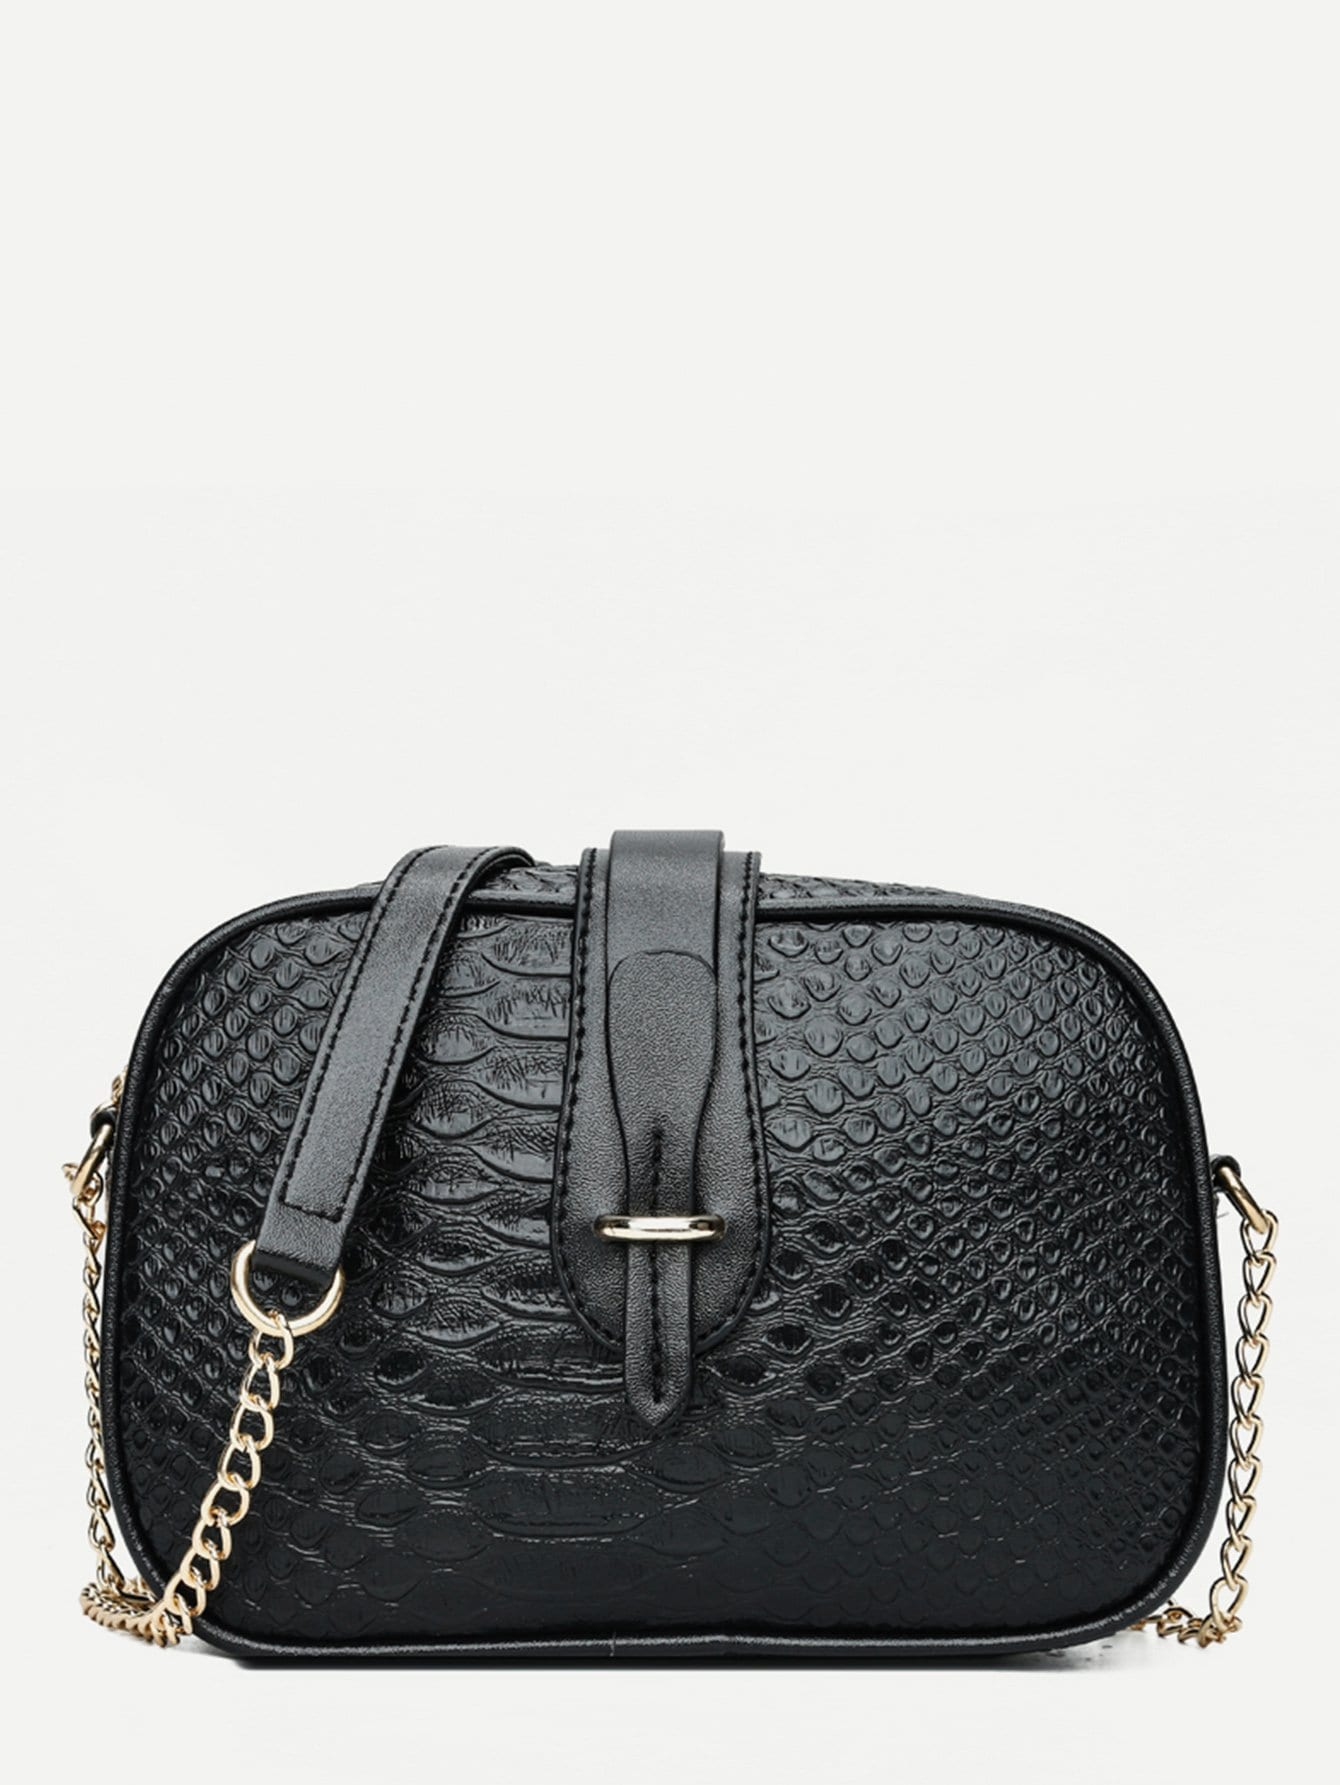 где купить Croc Embossed PU Chain Bag дешево